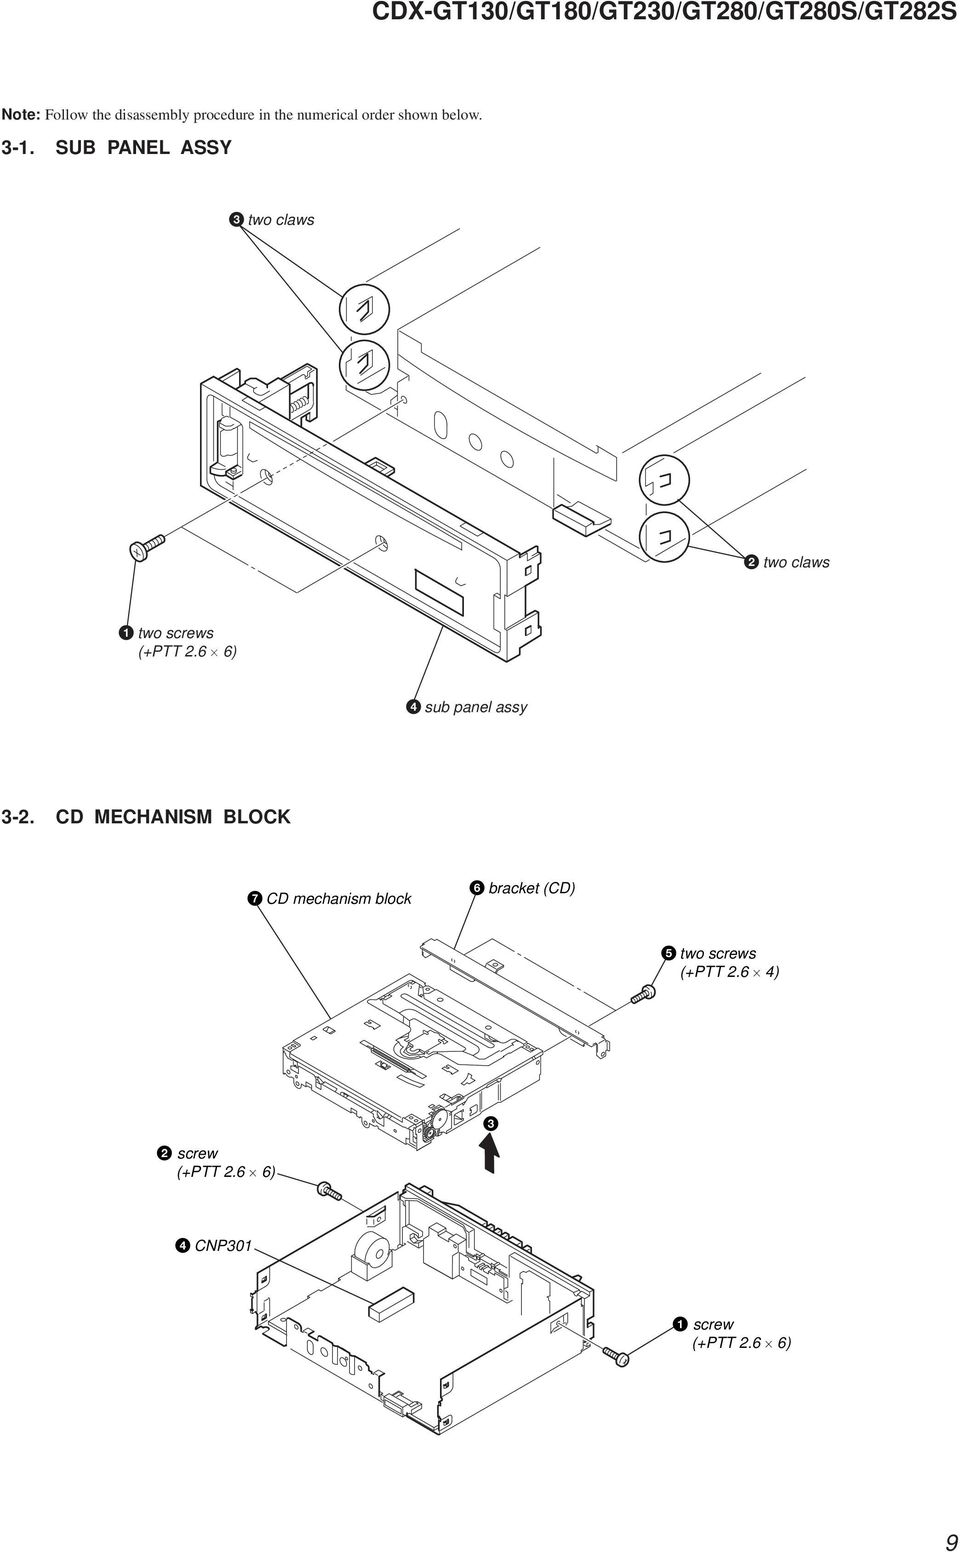 Photo Cdx Gt130 Specifications Pdf Sony Wiring Diagram Get Free Image About 6 Sub Panel Assy 3 2